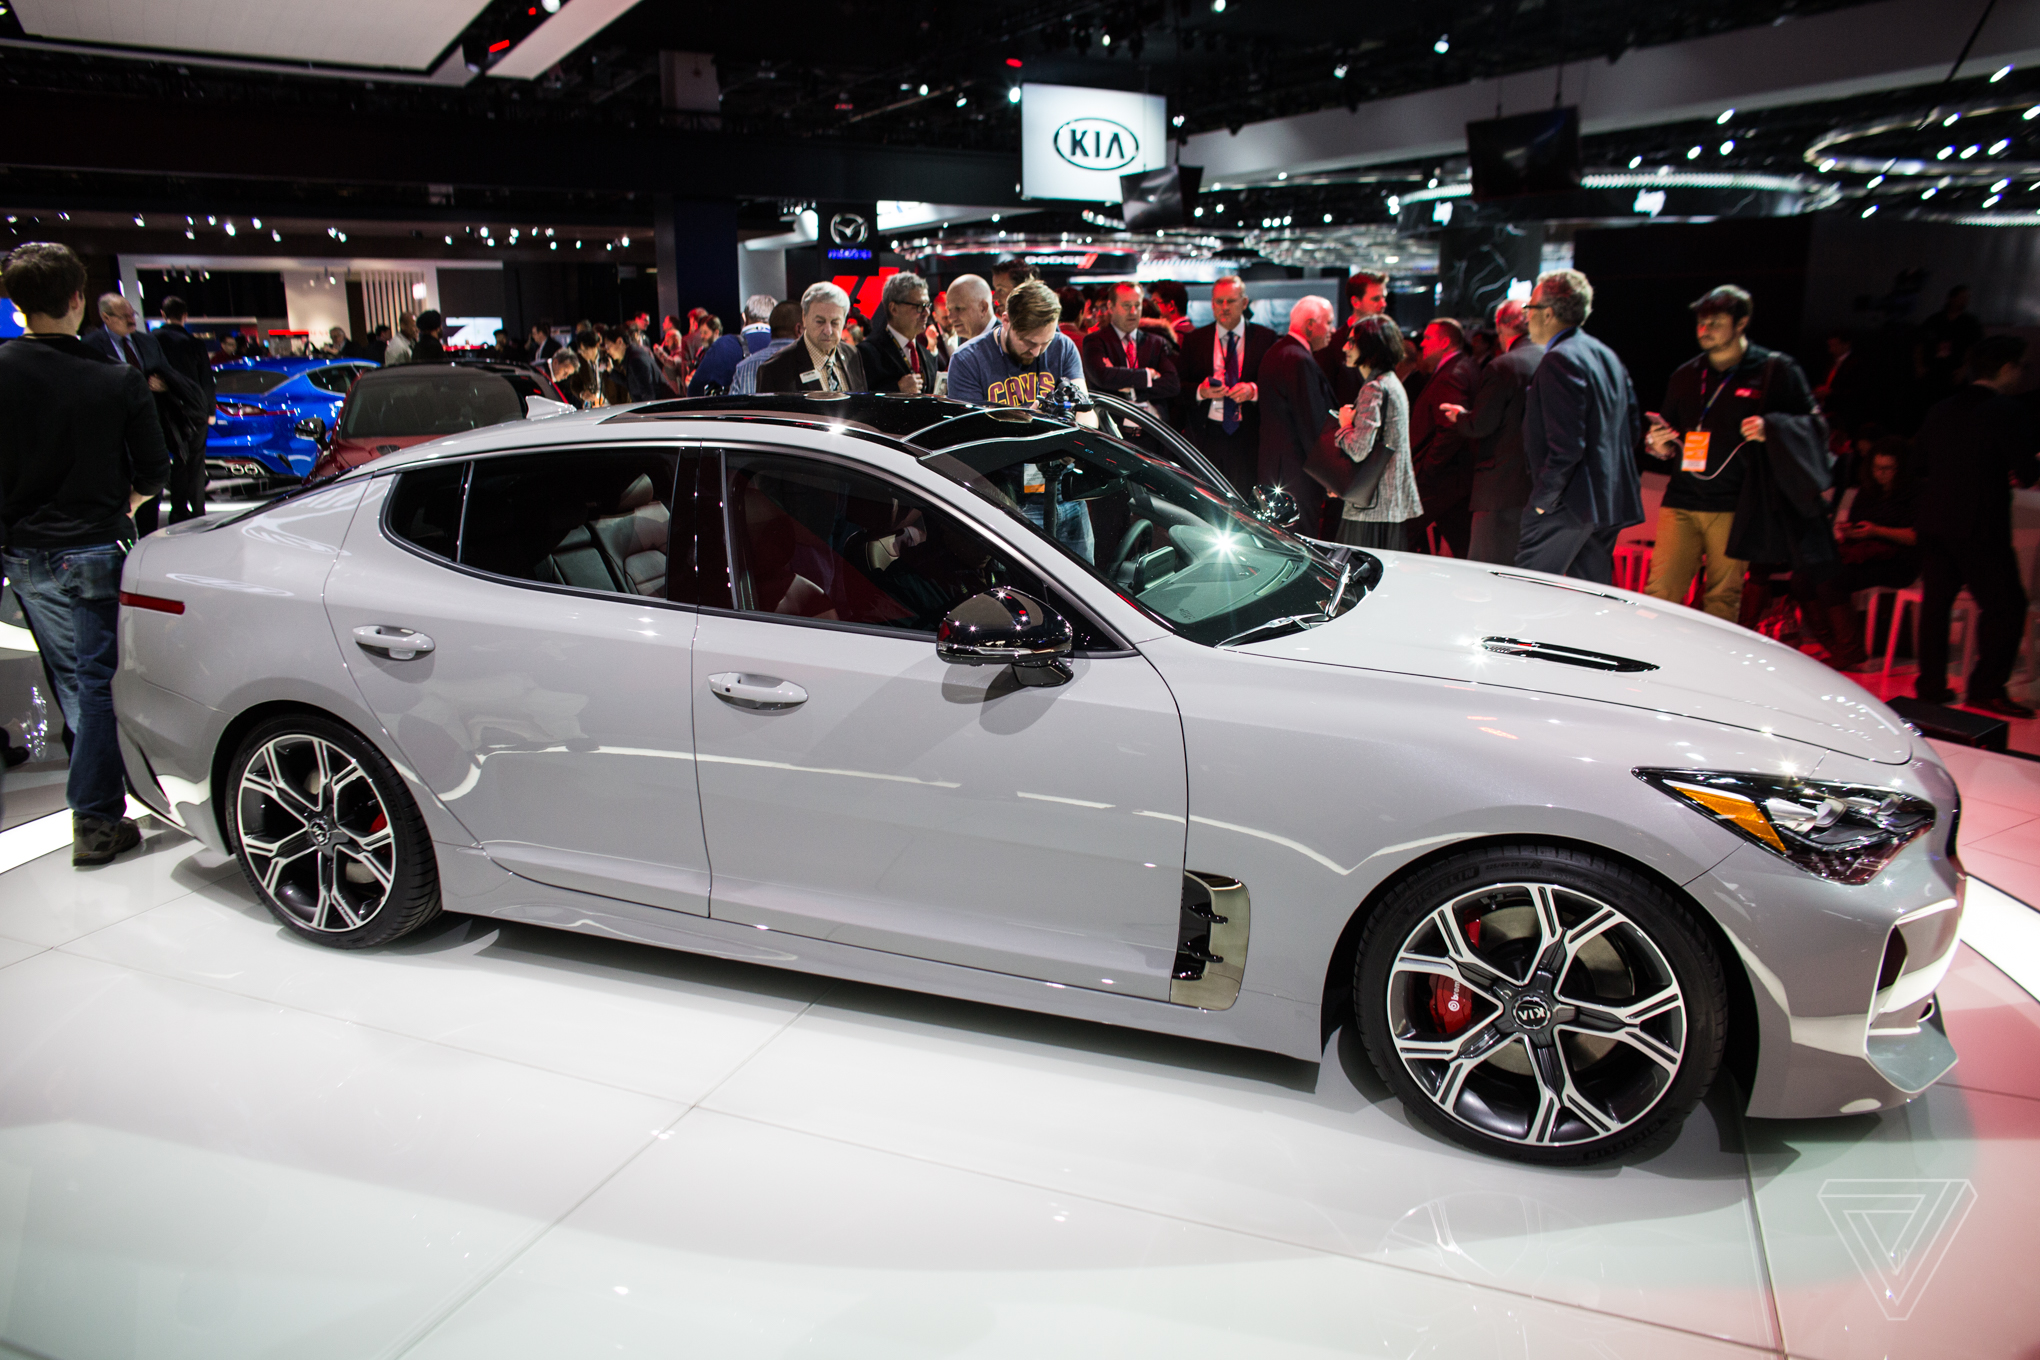 The Kia Stinger Is A Sports Sedan That Sizzles In Sea Of Practical Production Cars Techietricks